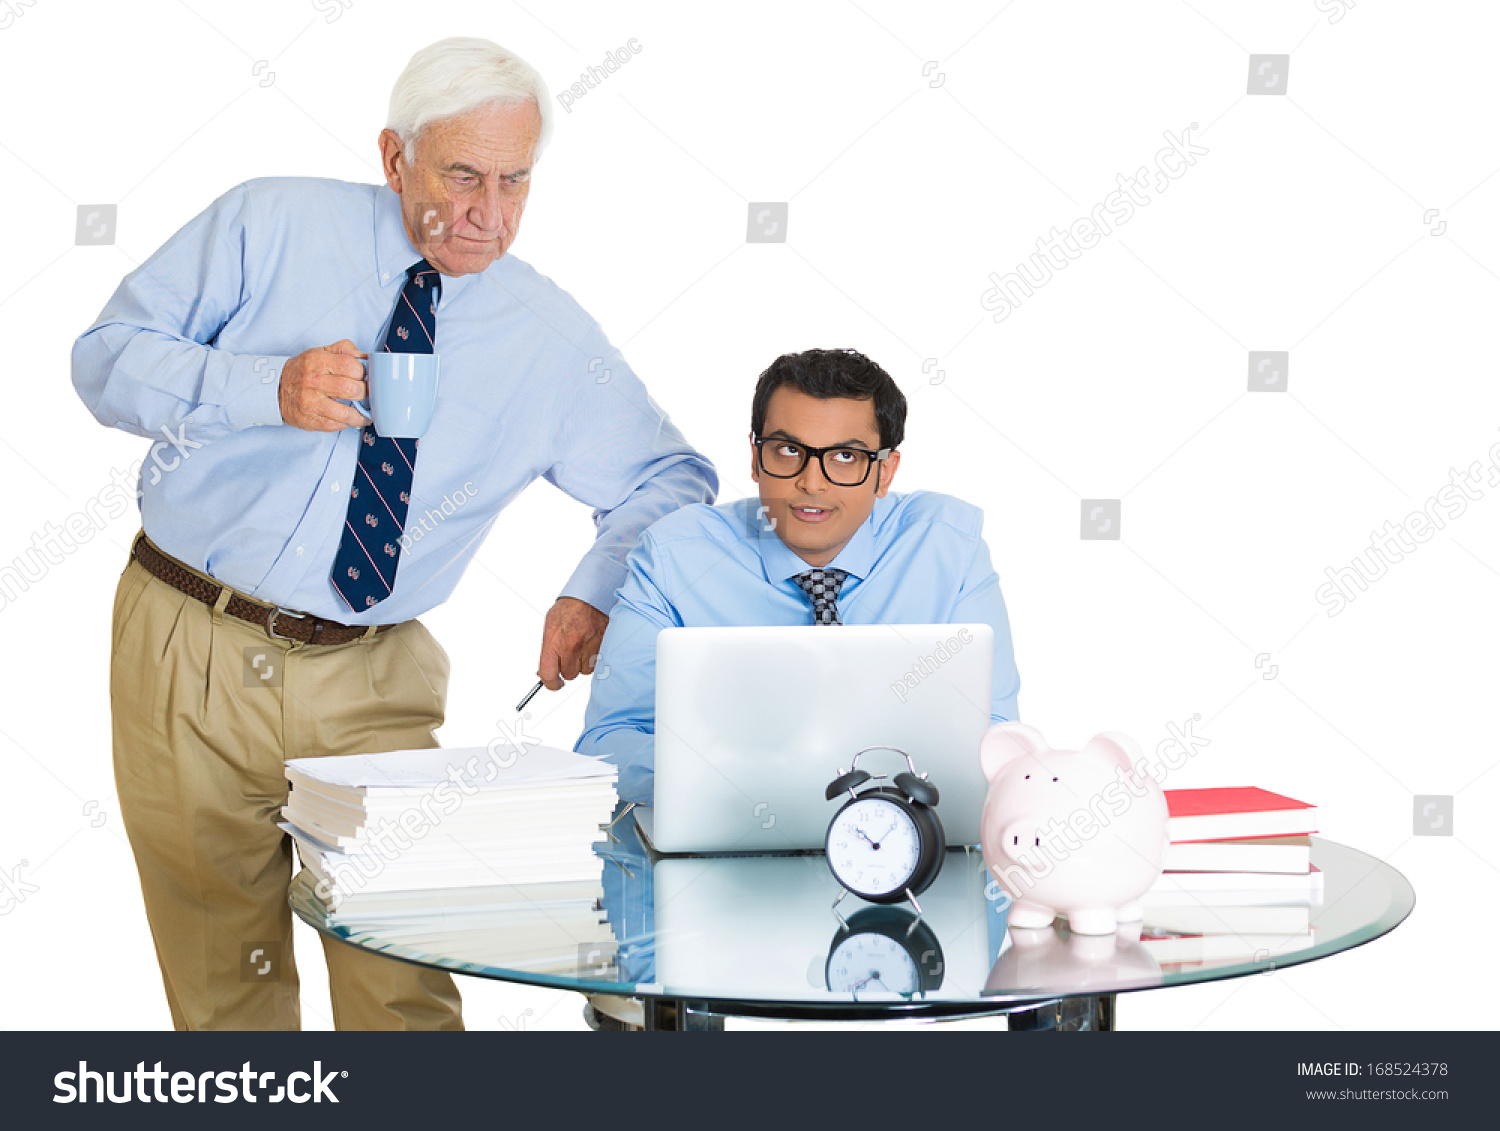 The Generation Gap at Work: Managing the Older Worker--or Younger Boss